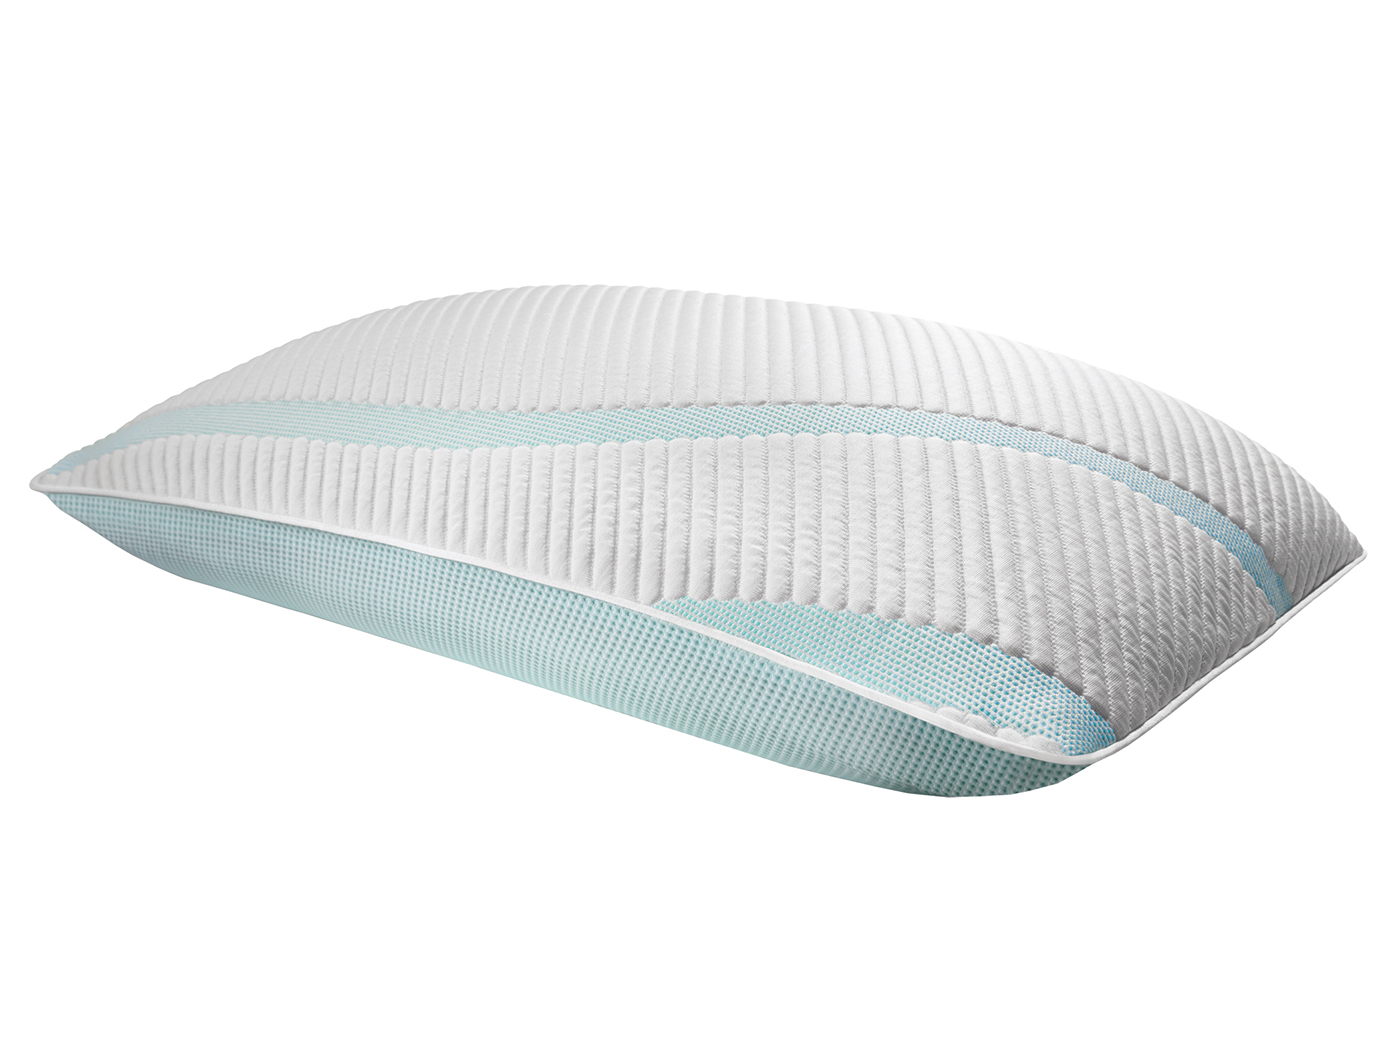 Tempur-Adapt Pro Mid Cooling Queen Pillow